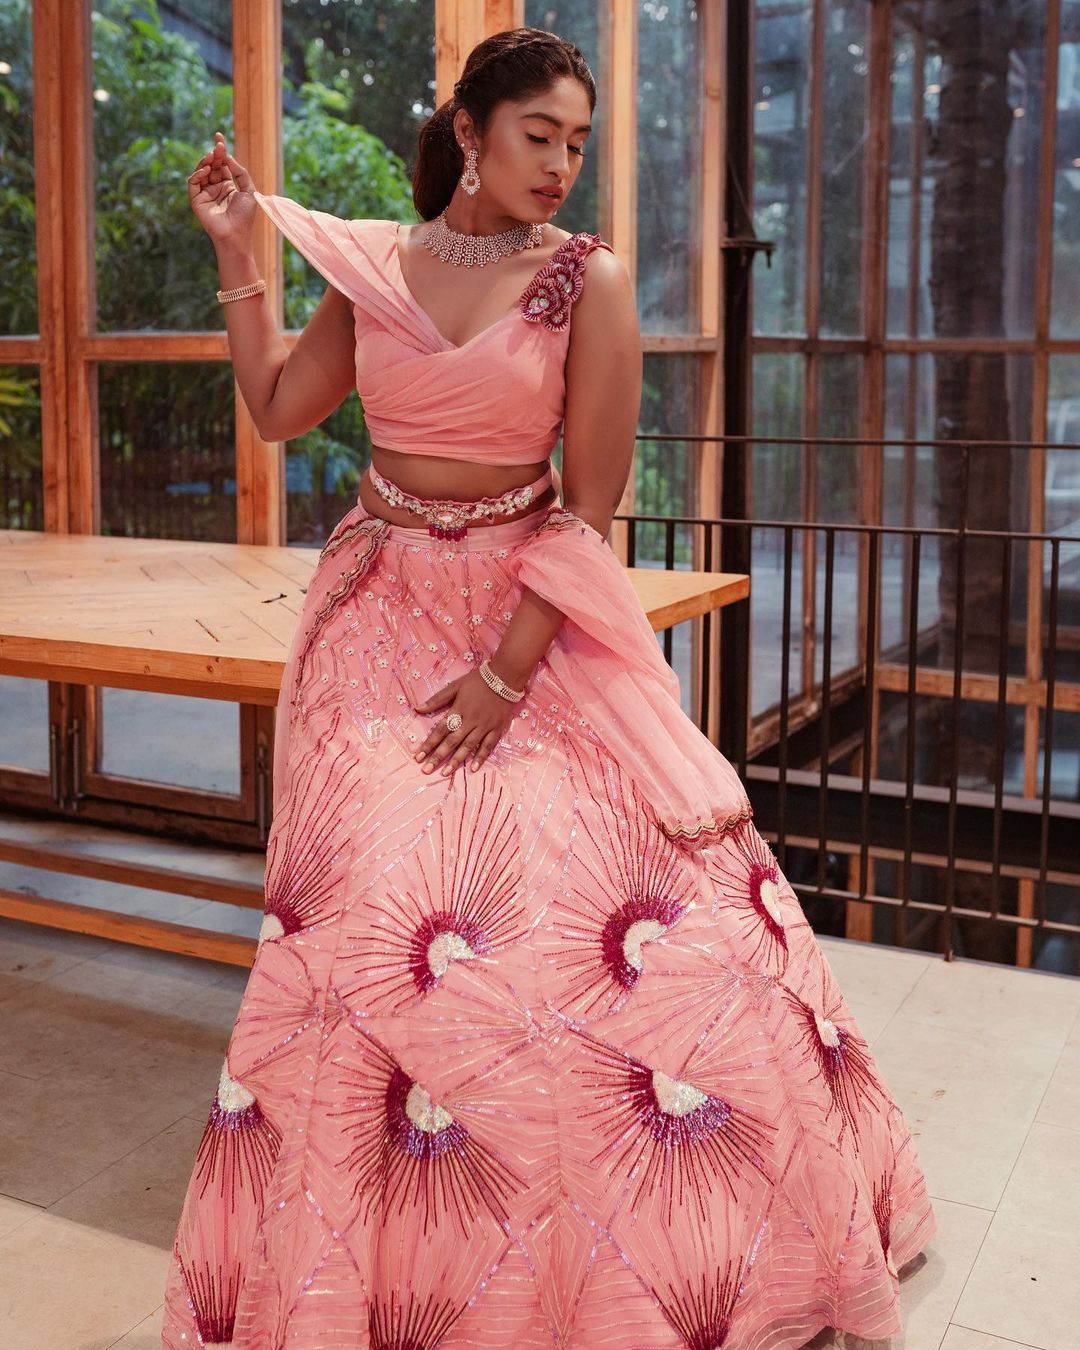 Millennial Bride! This wedding season step into this sculpted croptop and bridal lehenga and make a style statement! Invoking a vibe of grace and glamour  this one is for our daring brides! . To customize whatsapp 9442293096 2021-07-21